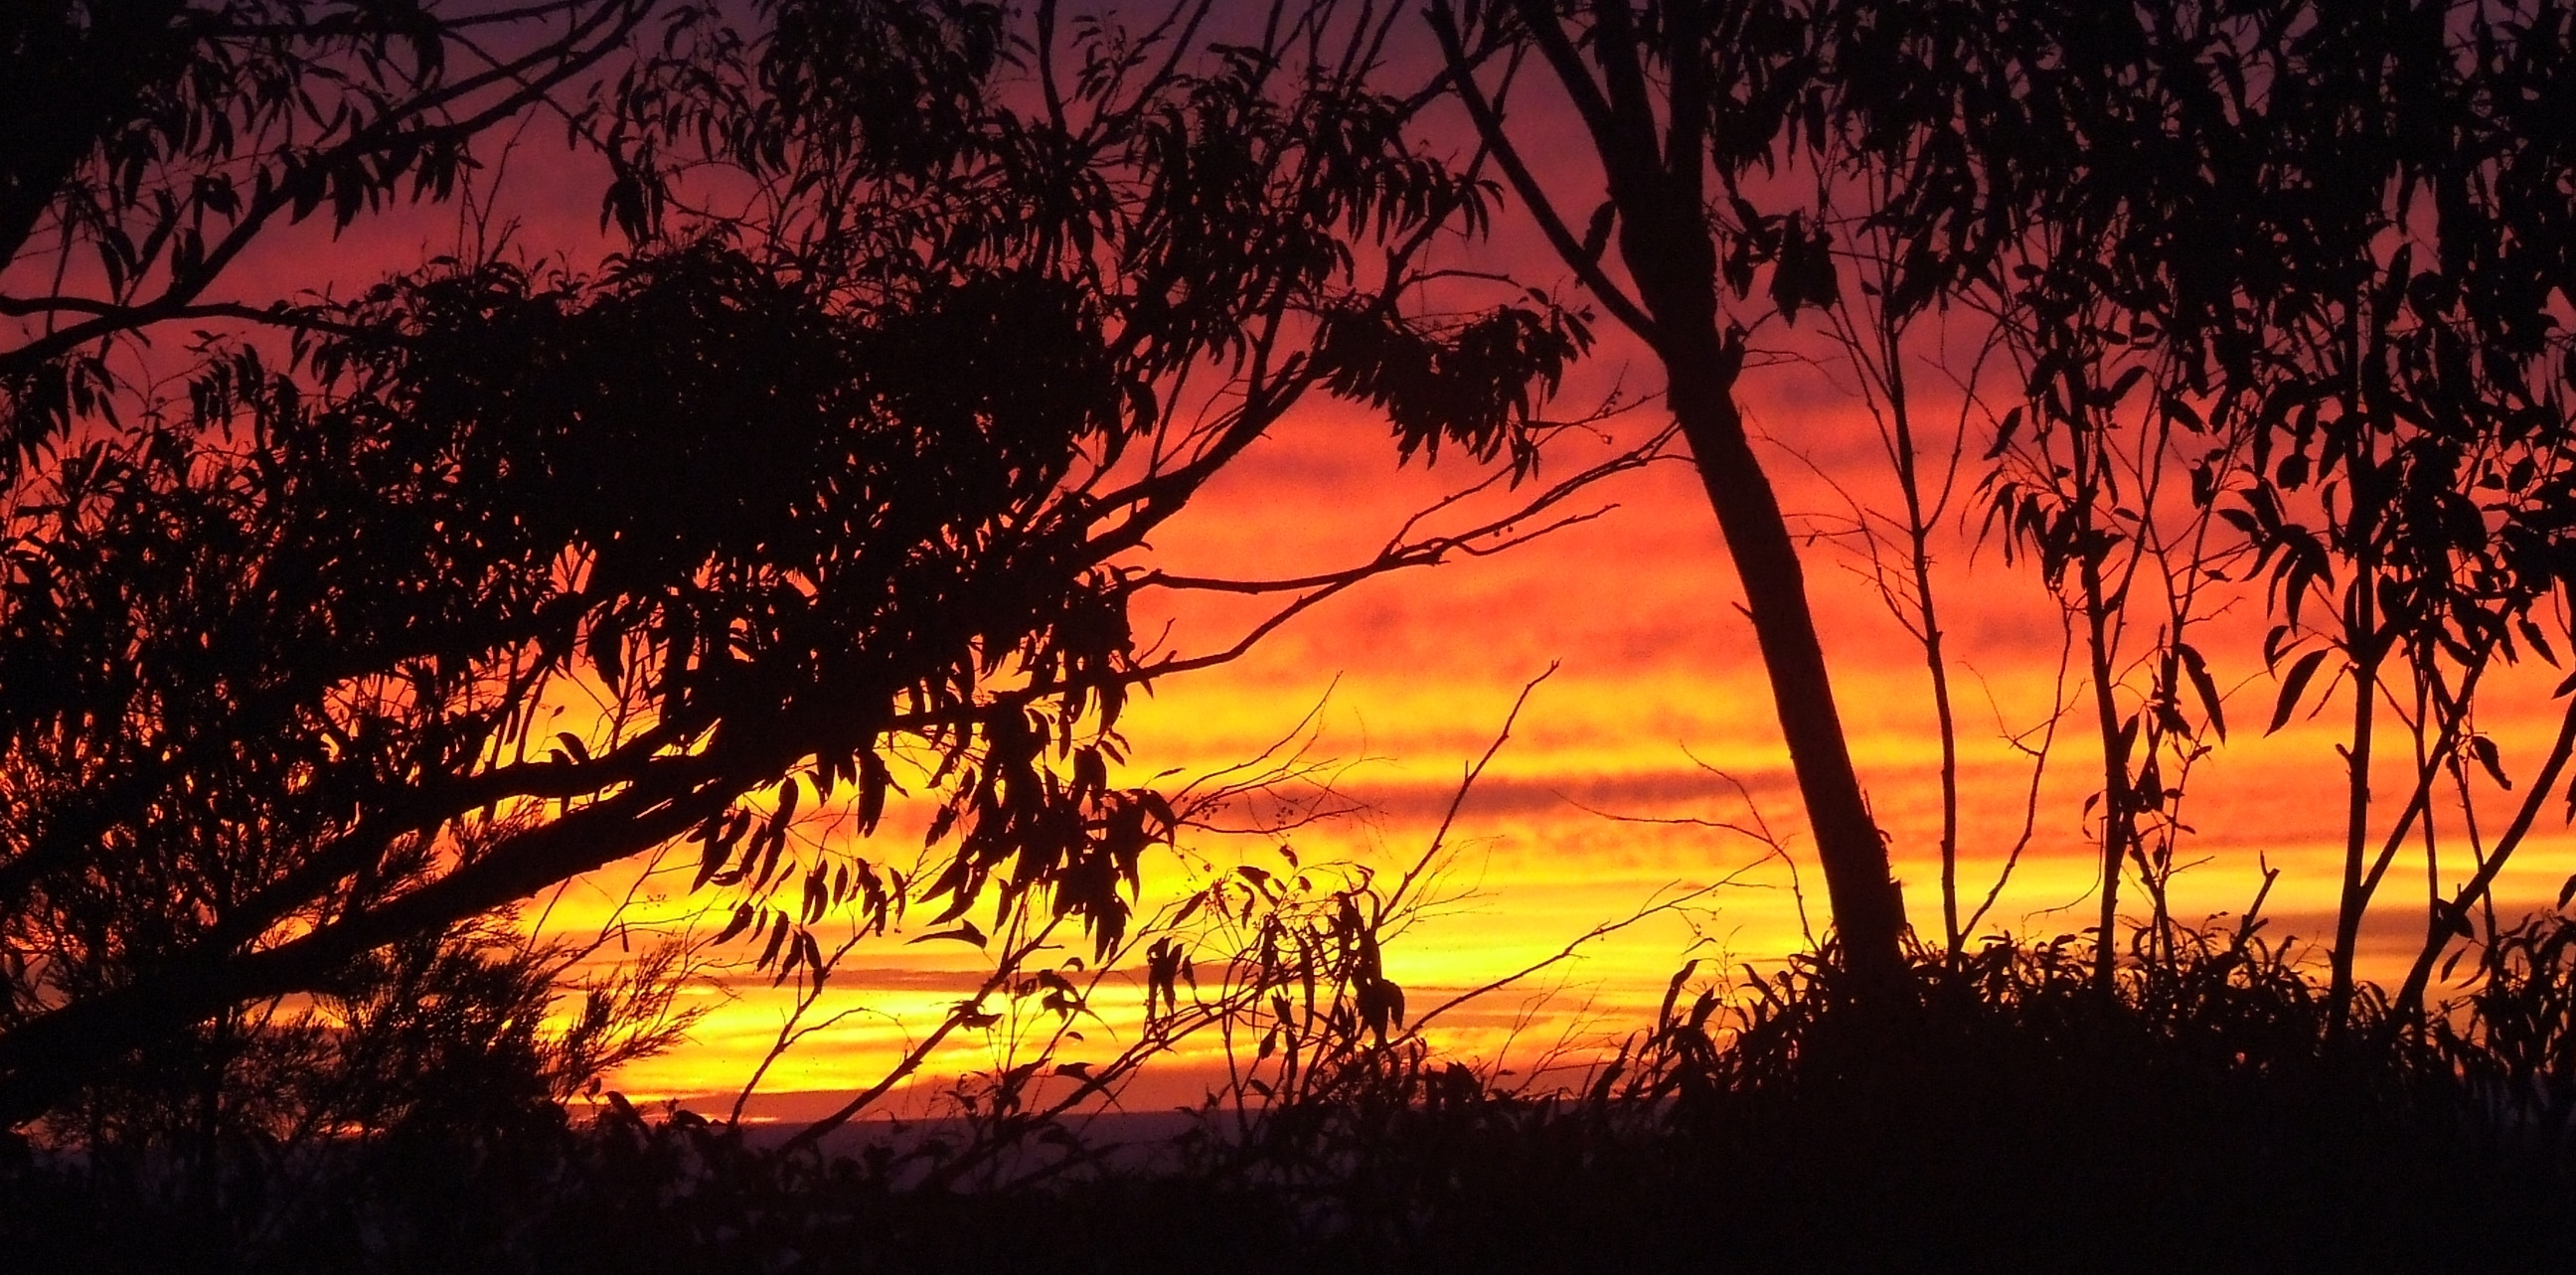 Soak in the Sunset at a NSW State Park